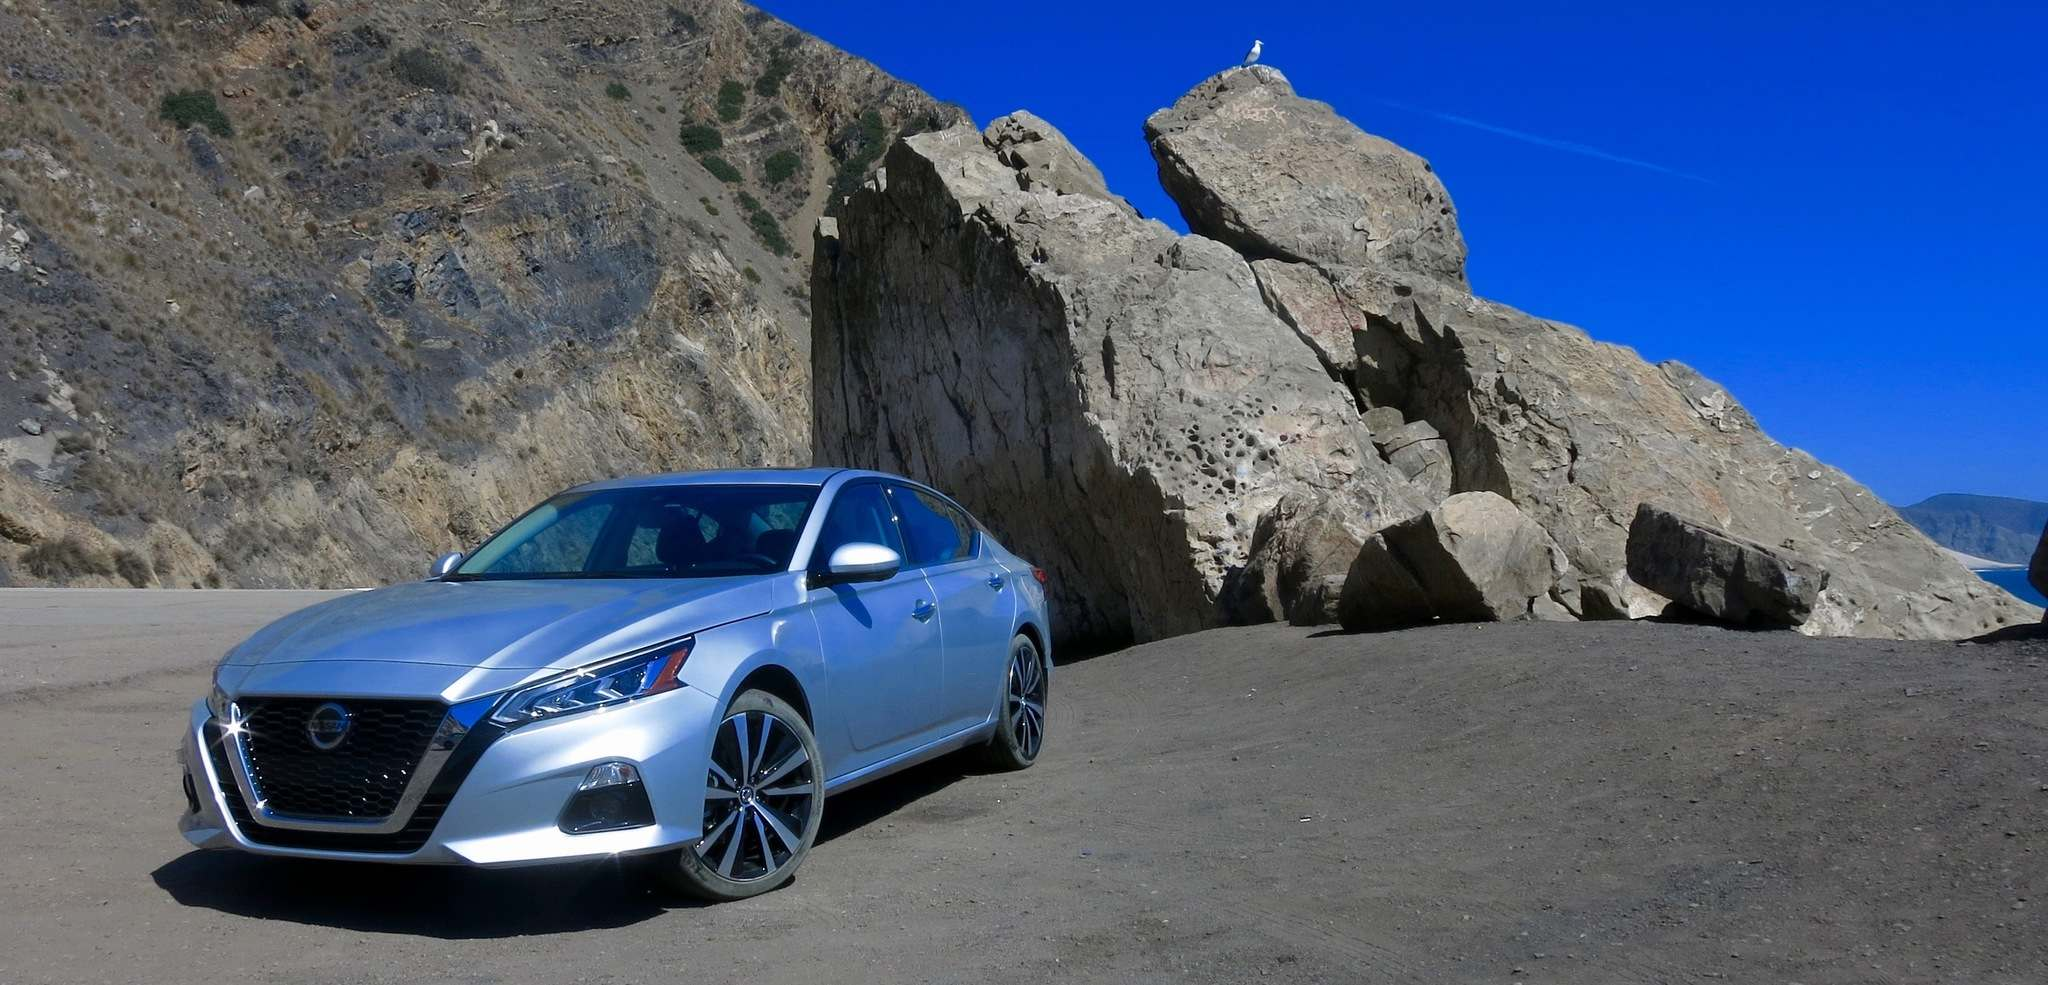 KELLY TAYLOR / WINNIPEG FREE PRESSThe 2019 Nissan Altima has a stylish new design and snazzy interior that wouldn't be out of place in Nissan's luxury brand, Infiniti.